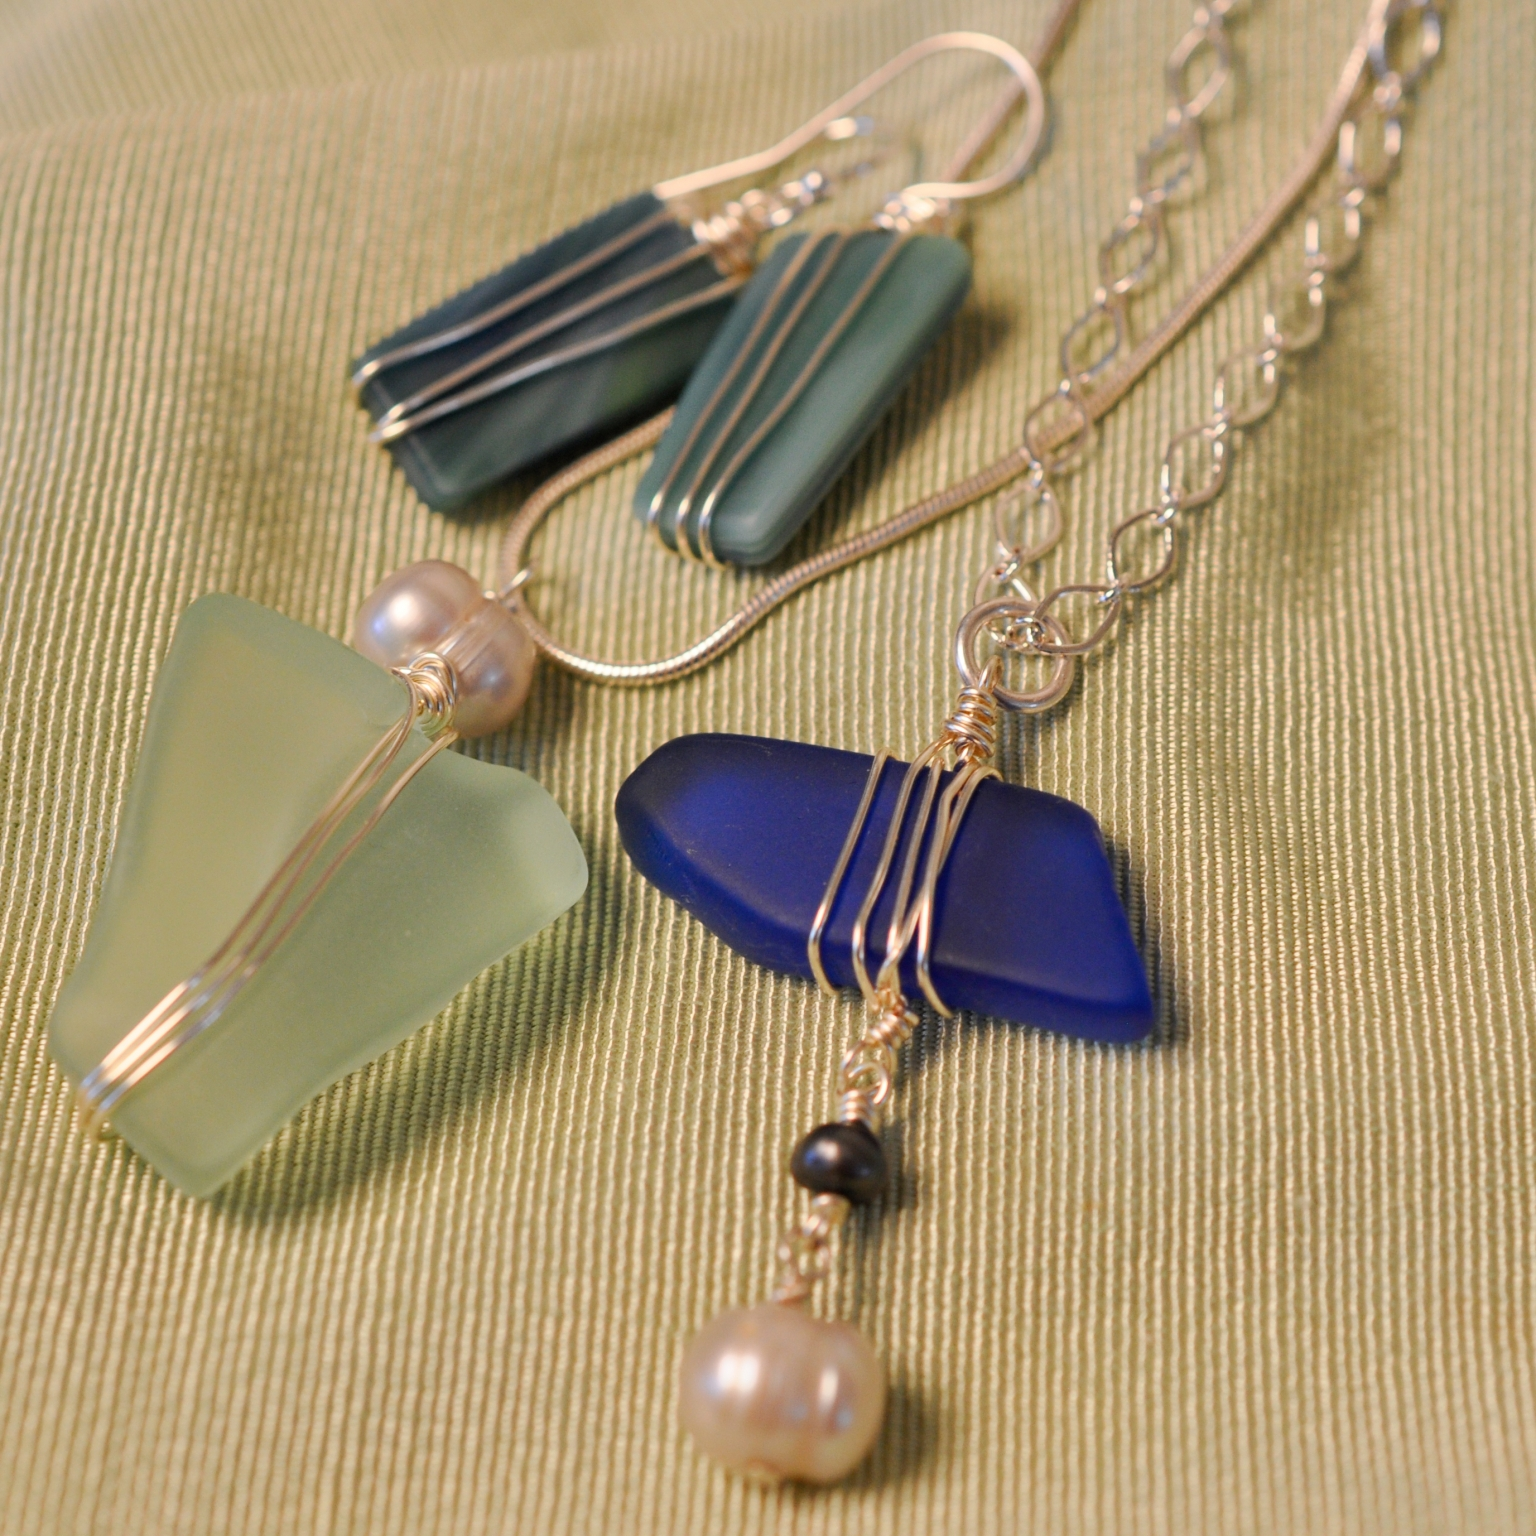 Art Night Out - Wire Bound Seaglass Necklace and Earrings